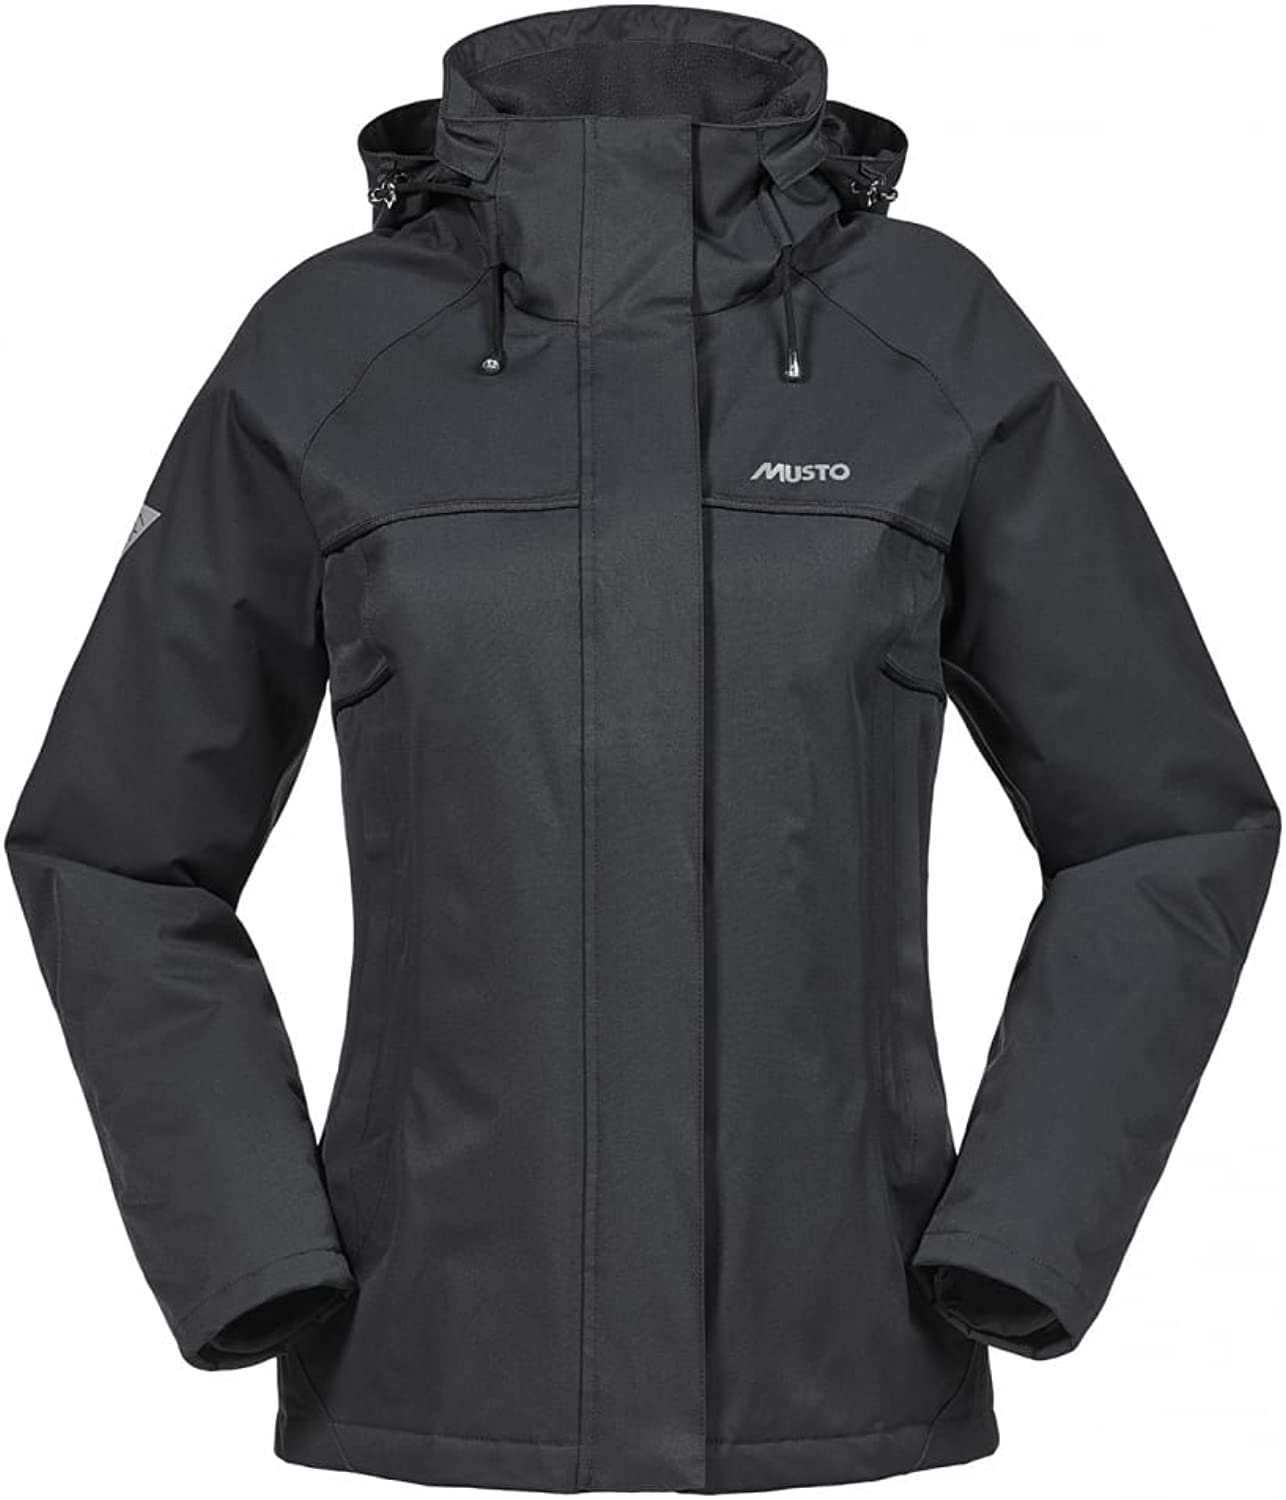 Musto Canter BR1 Ladies Jacket